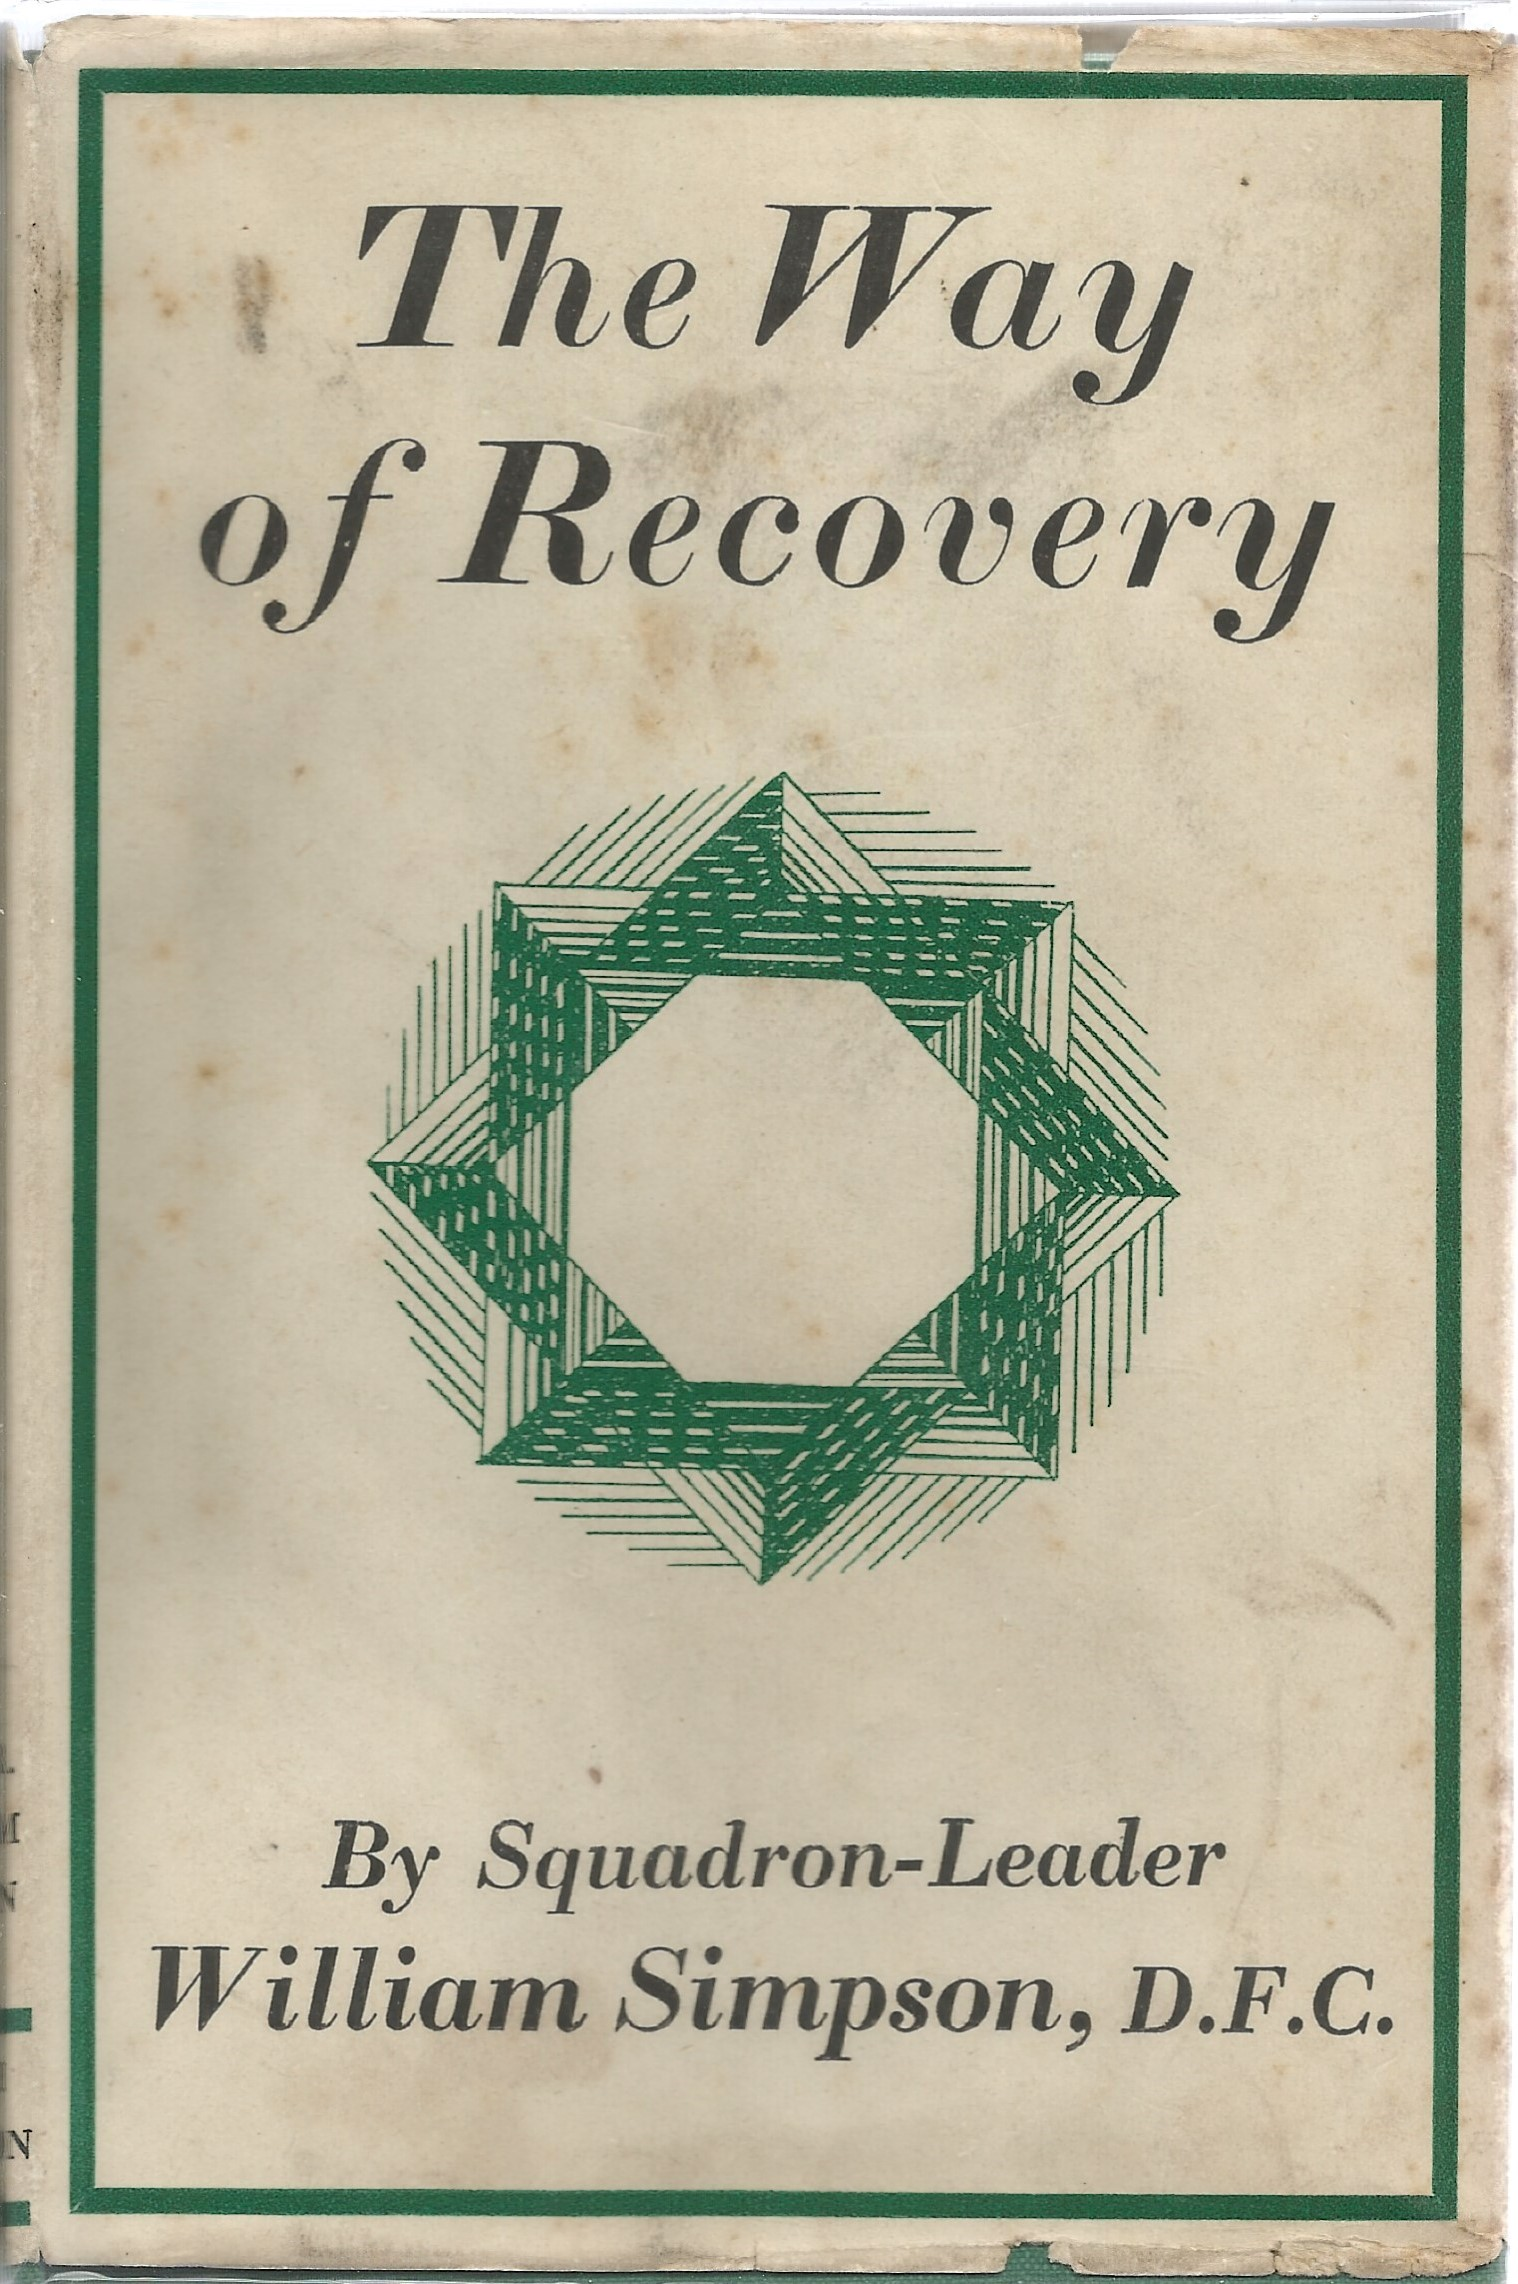 William Simpson DFC. The Way Of Recovery. WW2 First edition book, showing signs of age. Signed by